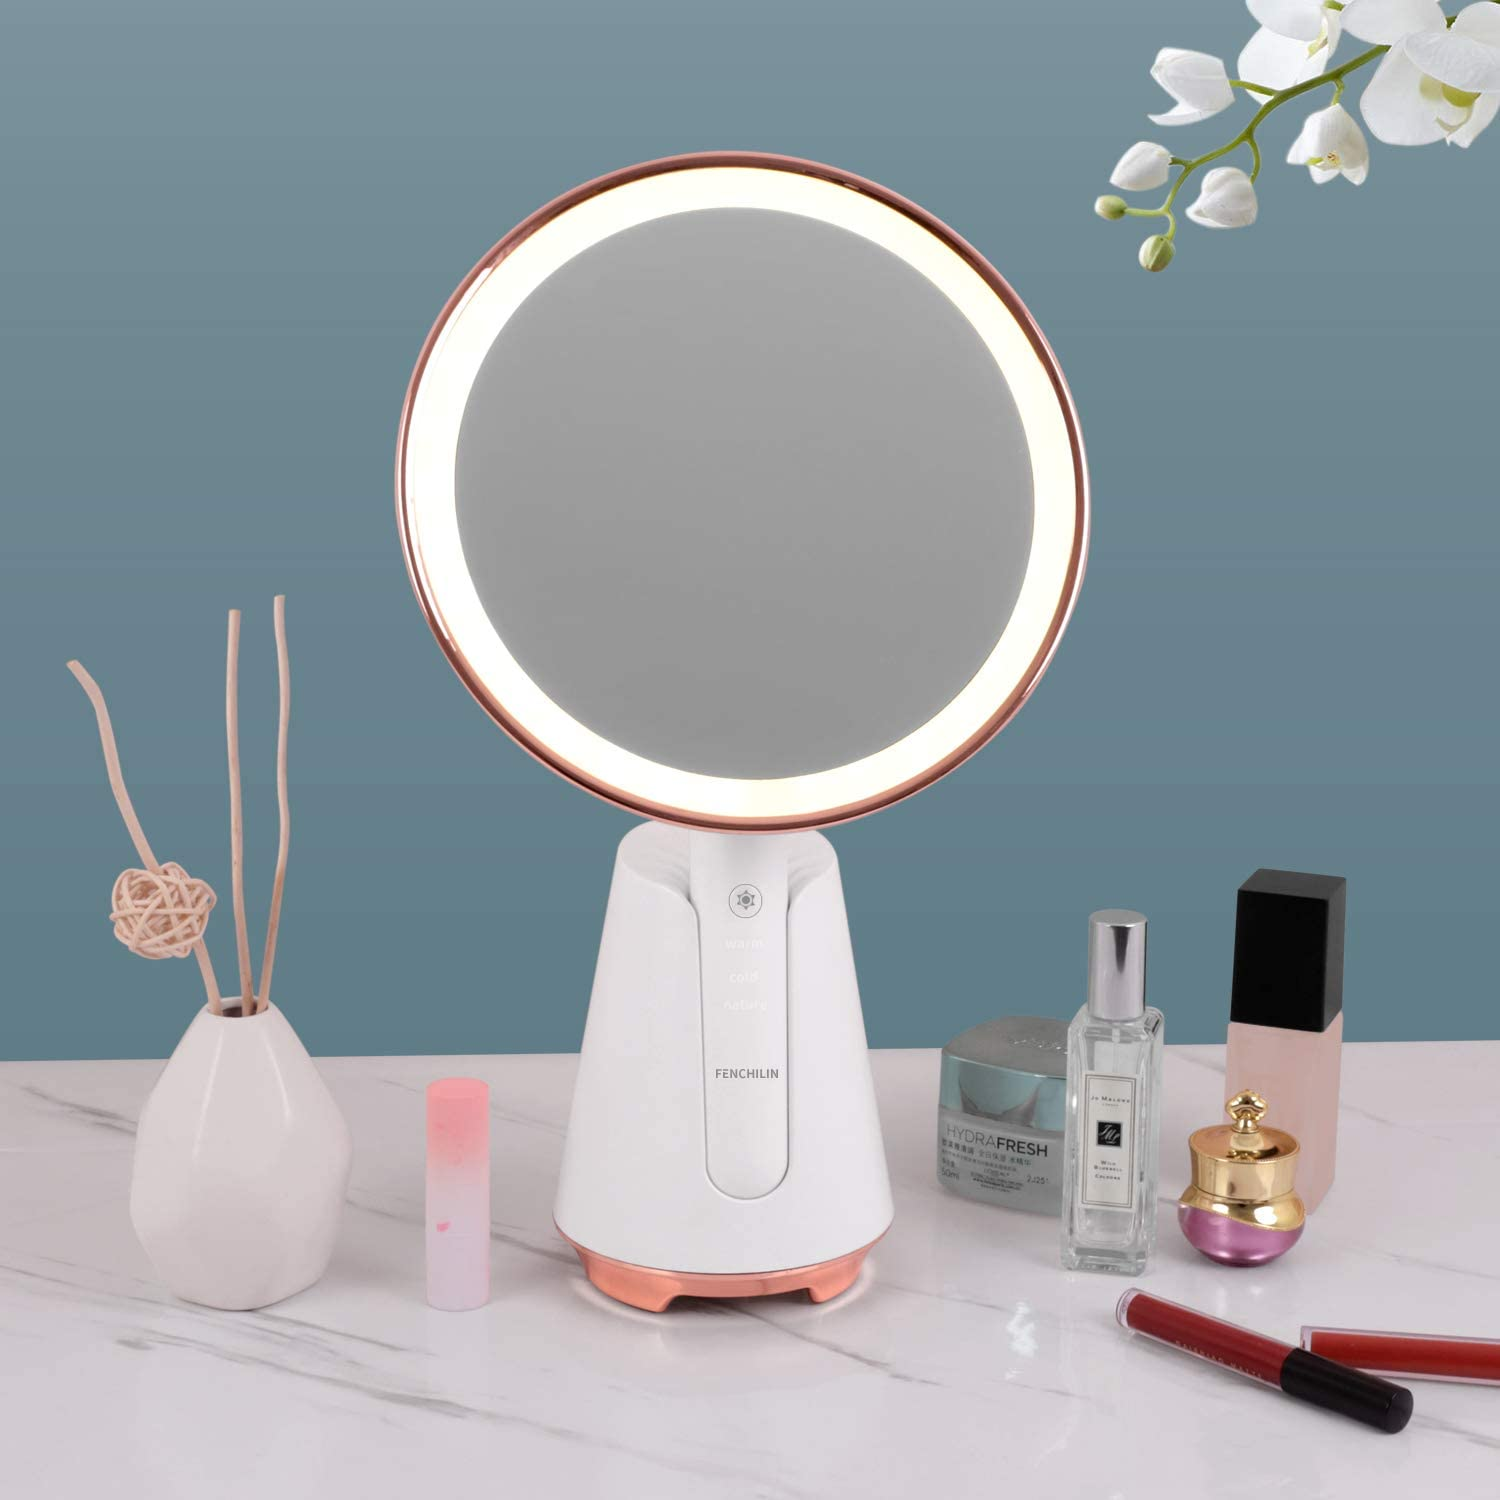 FENCHILIN Vanity Tabletop Makeup Mirror Challenge the lowest price Spe Bluetooth with Light Challenge the lowest price